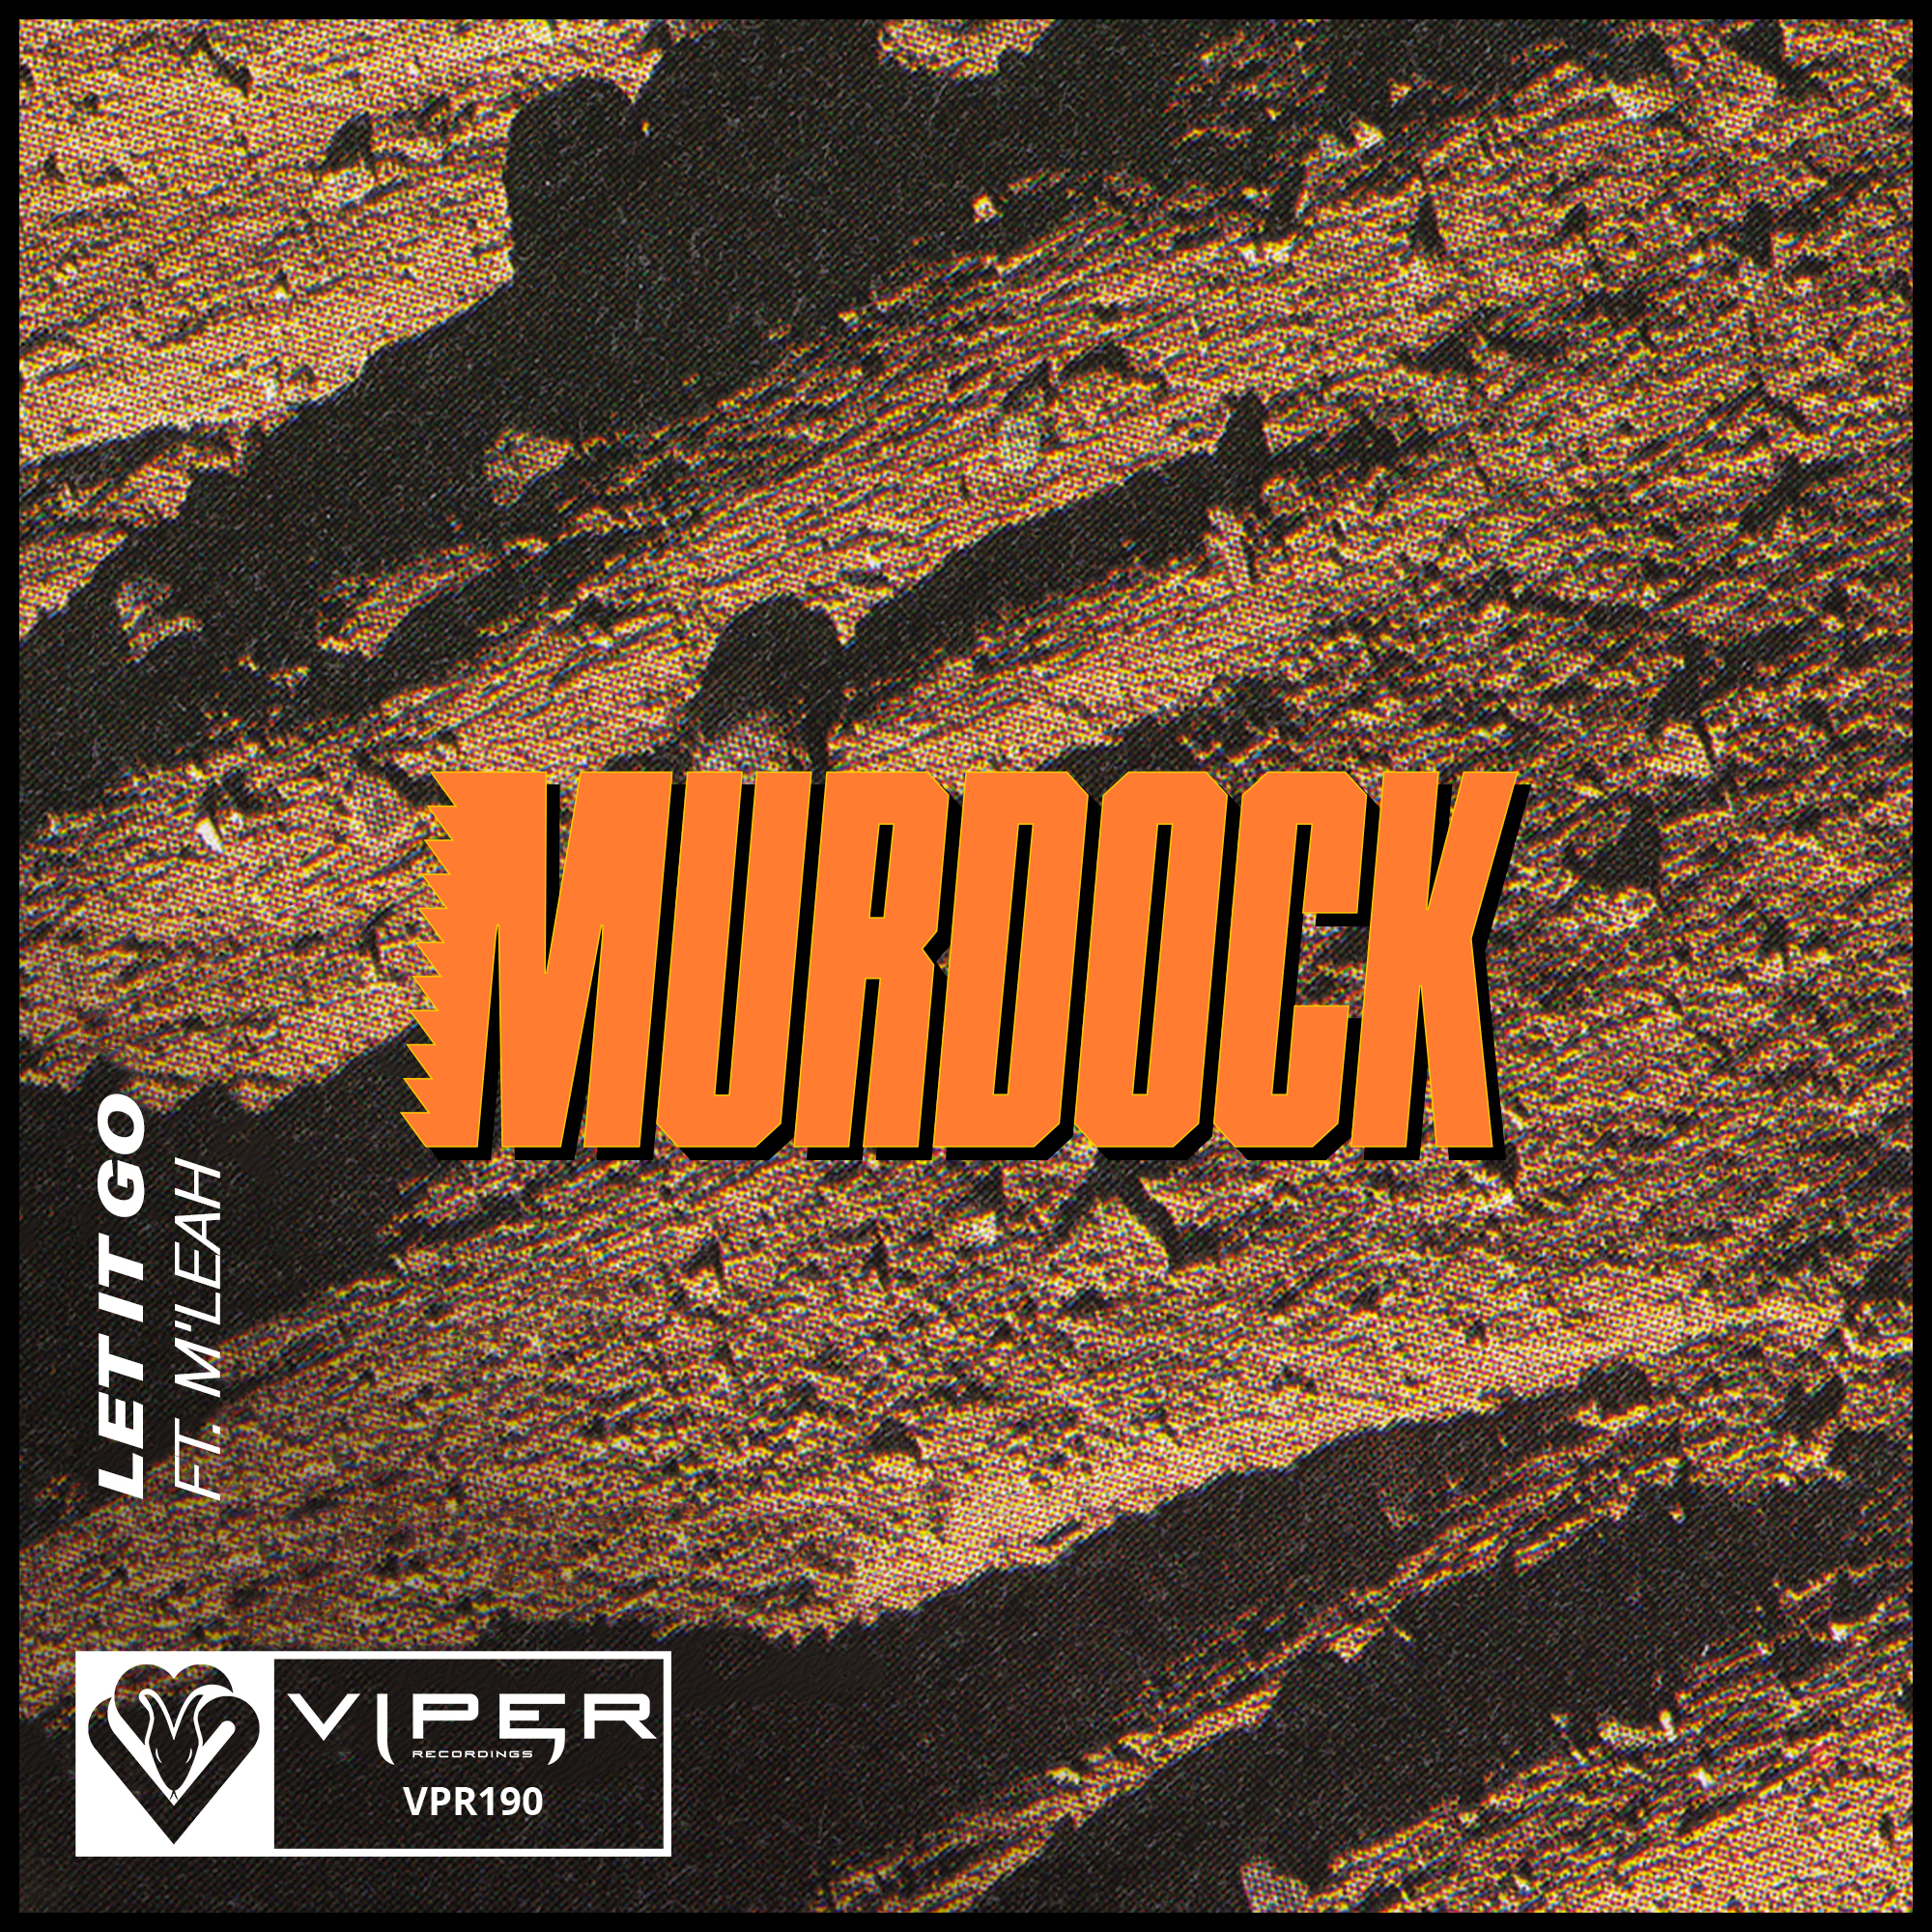 Murdock - Let It Go feat. M'Leah [VPR190]